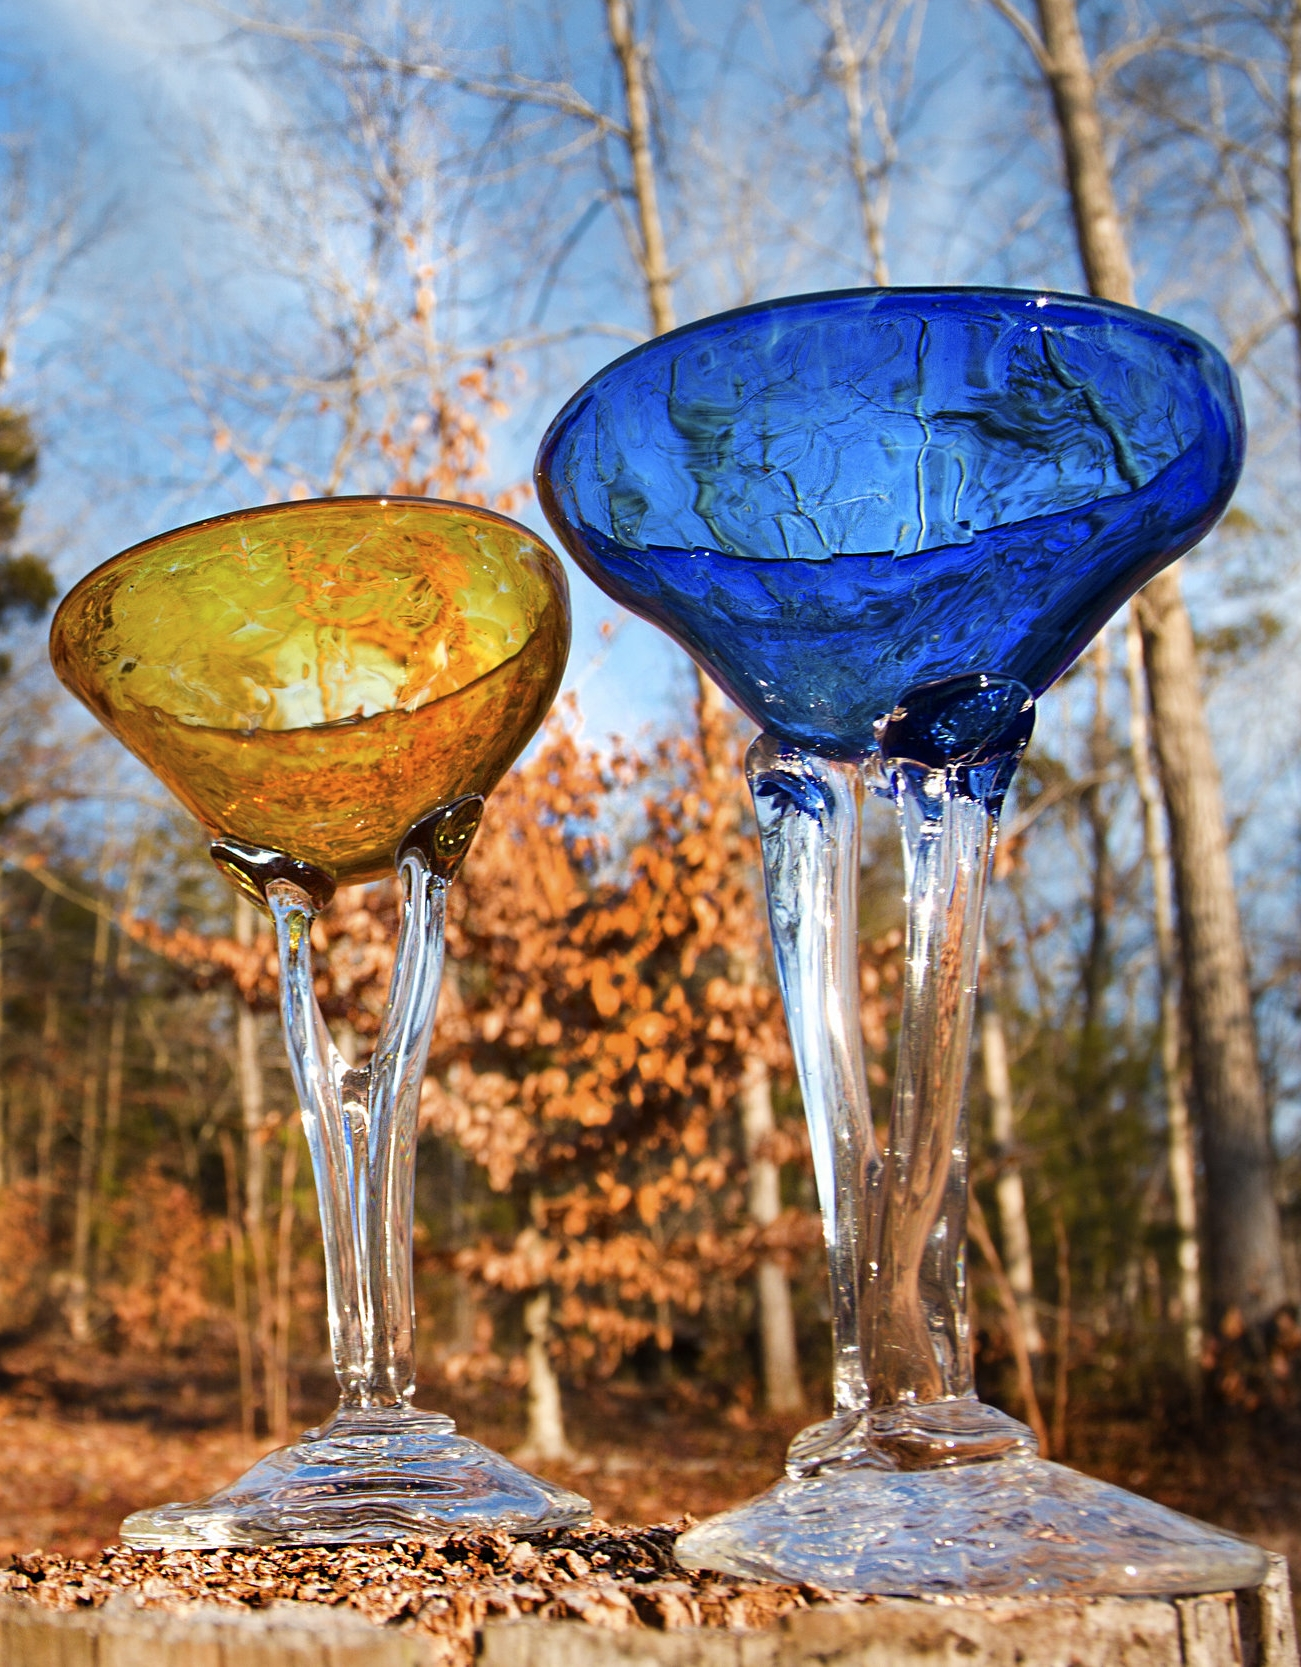 STEM - These leggy stems are the perfect vehicle for a dirty martini or refreshing margarita. Just add a cool patio, a few good friends, and you're good to go. Available in a variety of colors, both opaque & translucent.Approximately 5″ D x 8 1/2″H97.00 + Shipping